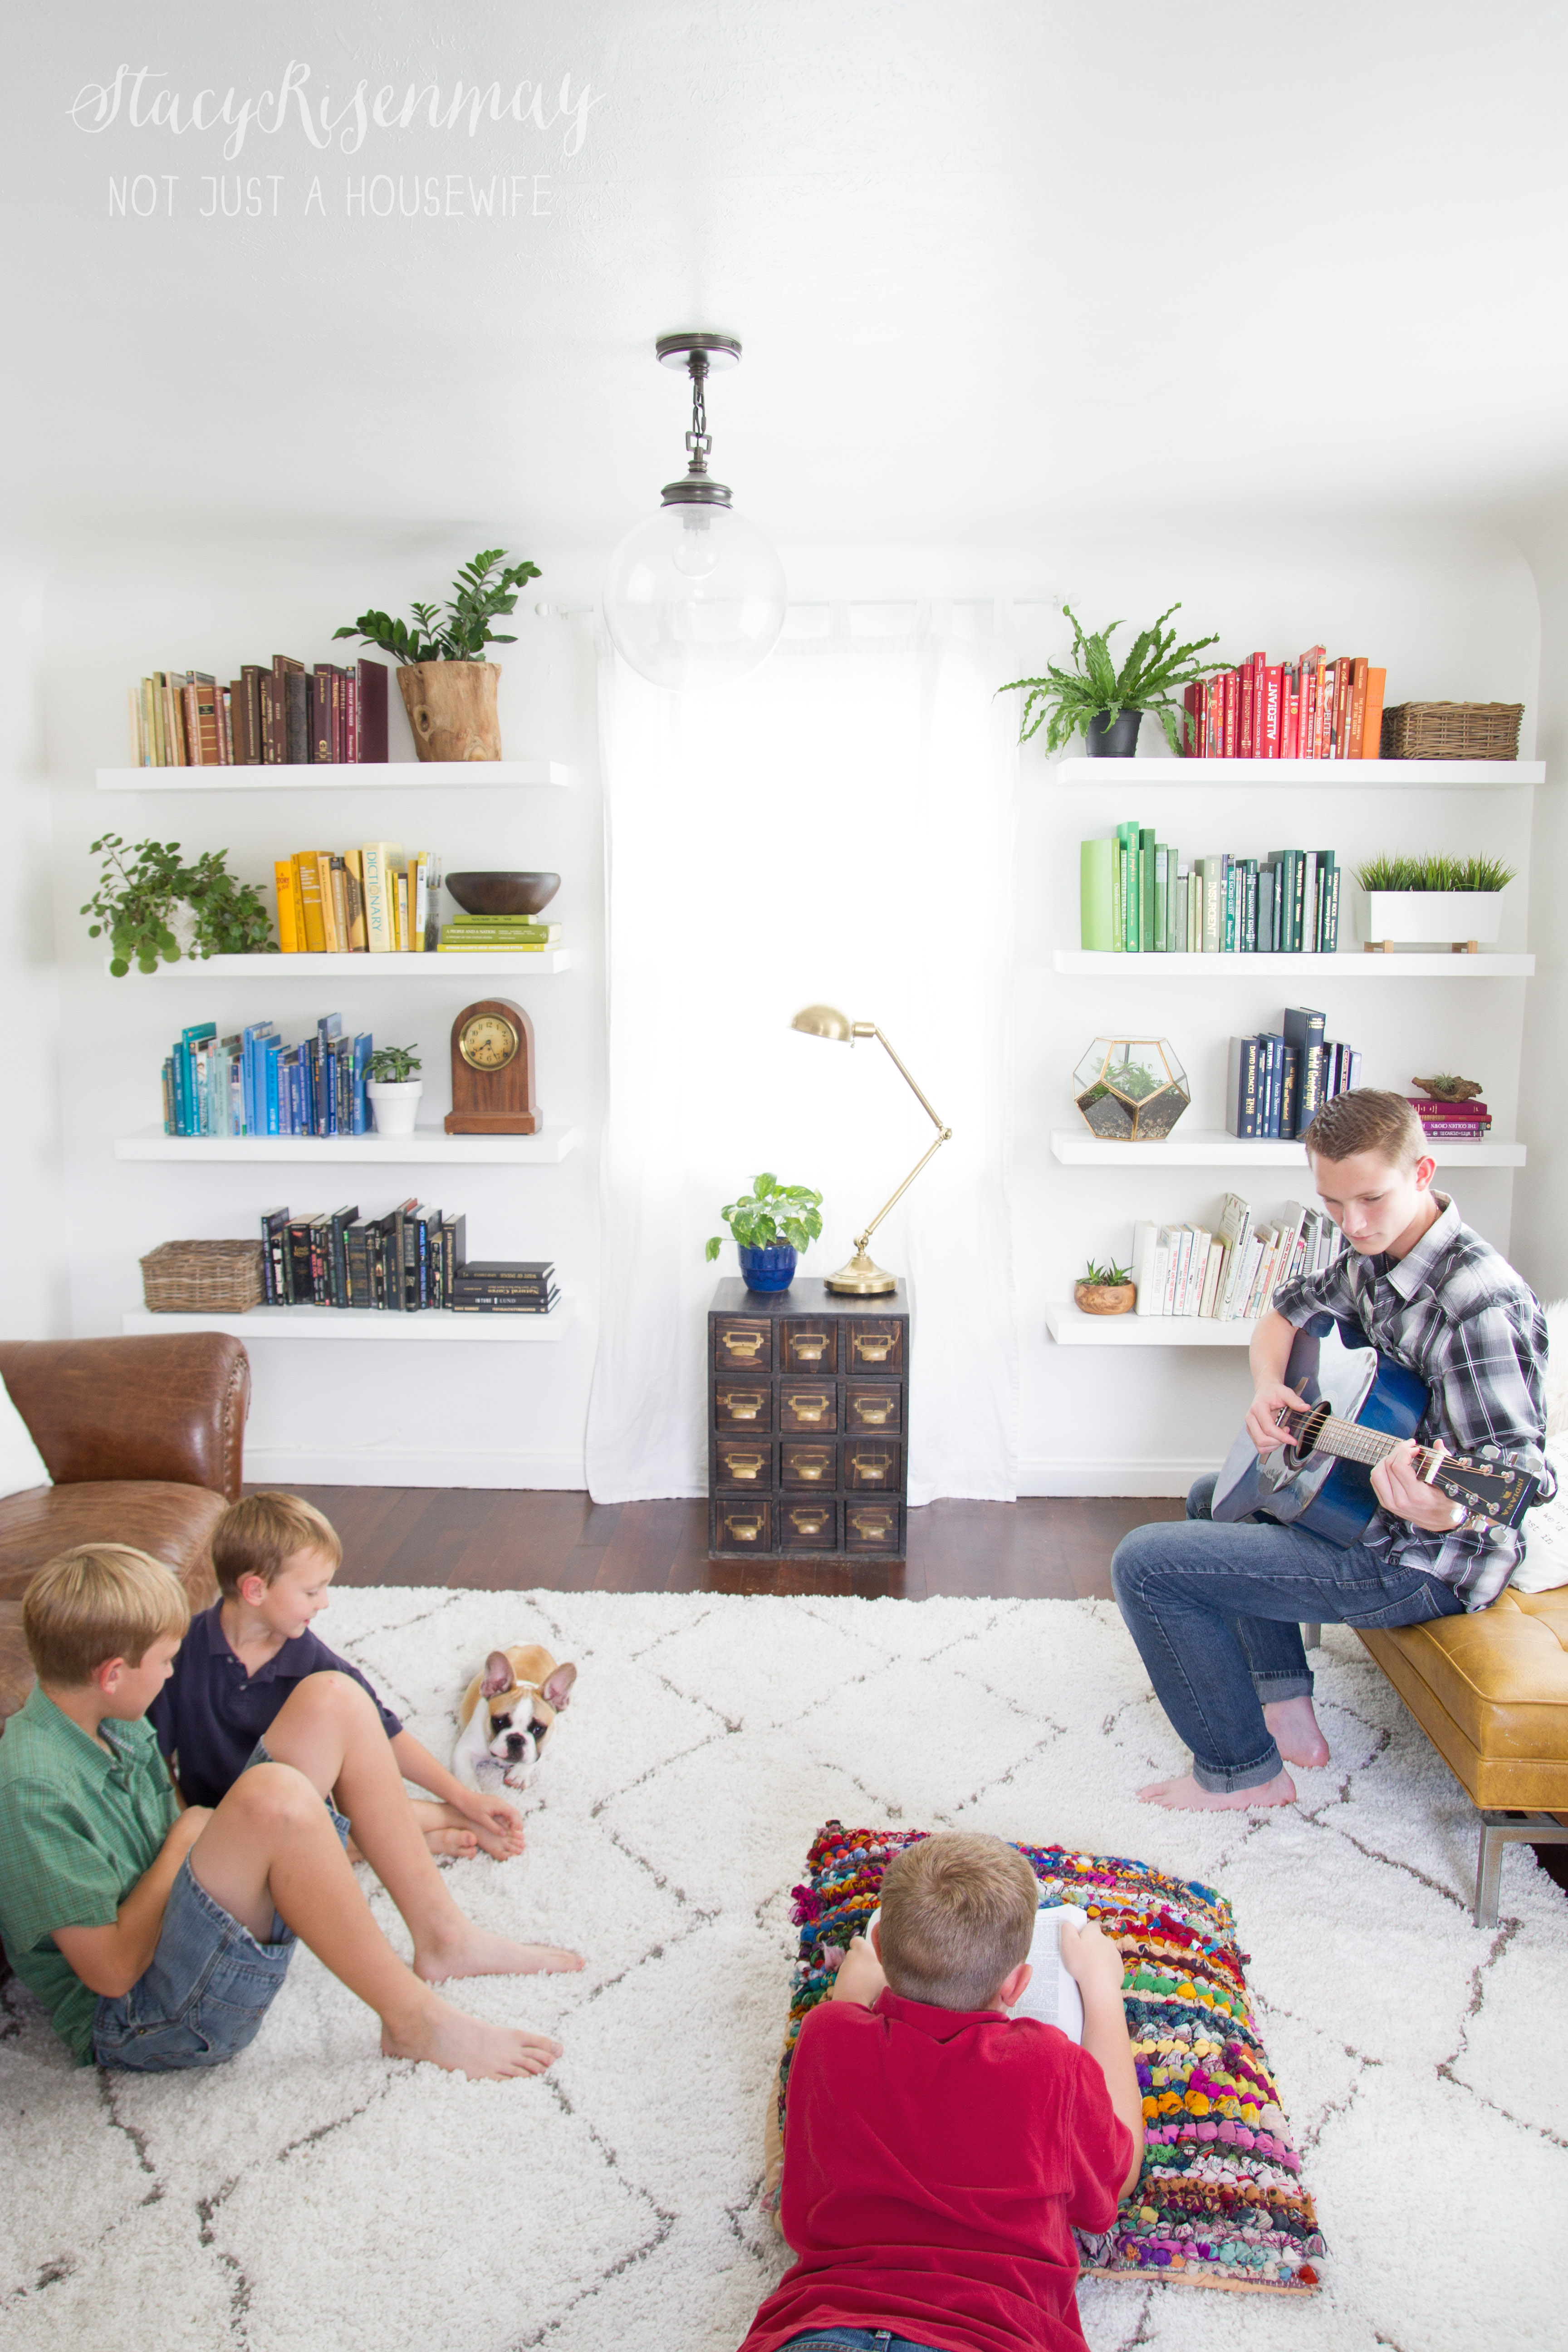 Living Room Ideas For Family Bonding: Steaming Curtains And Rugs By Not Just A Housewife